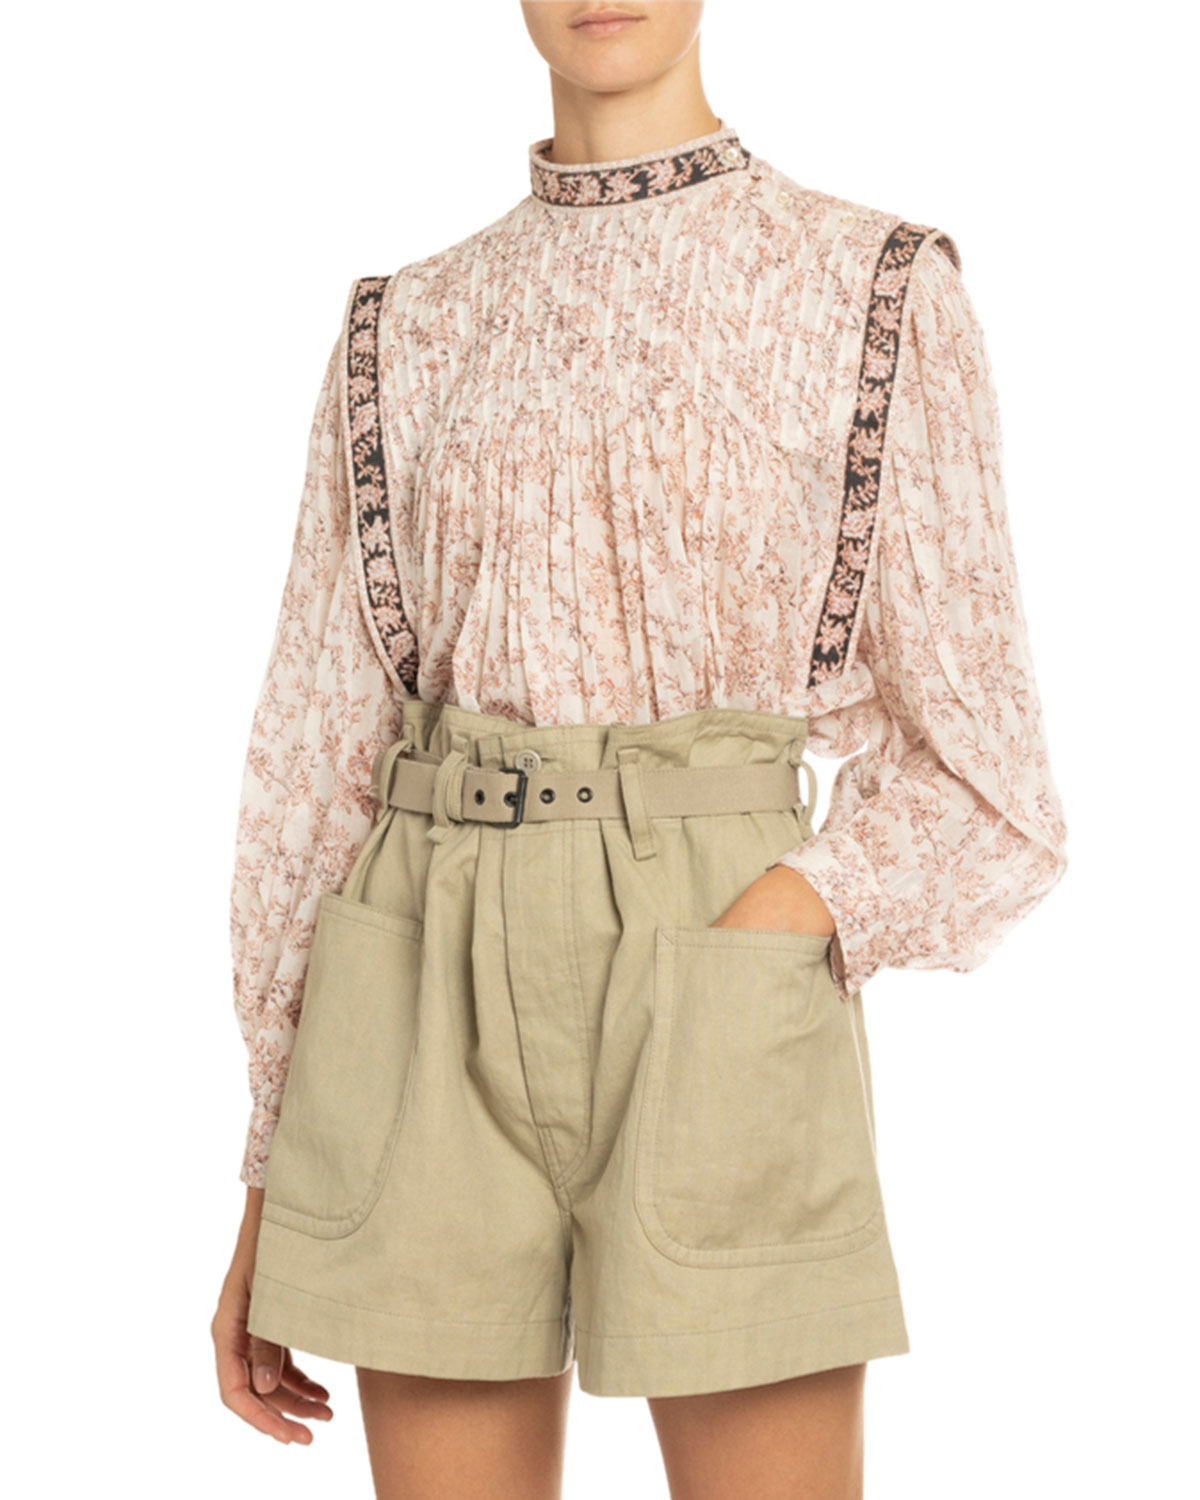 Vega Pleated Floral Print Cotton Blouse by Etoile Isabel Marant